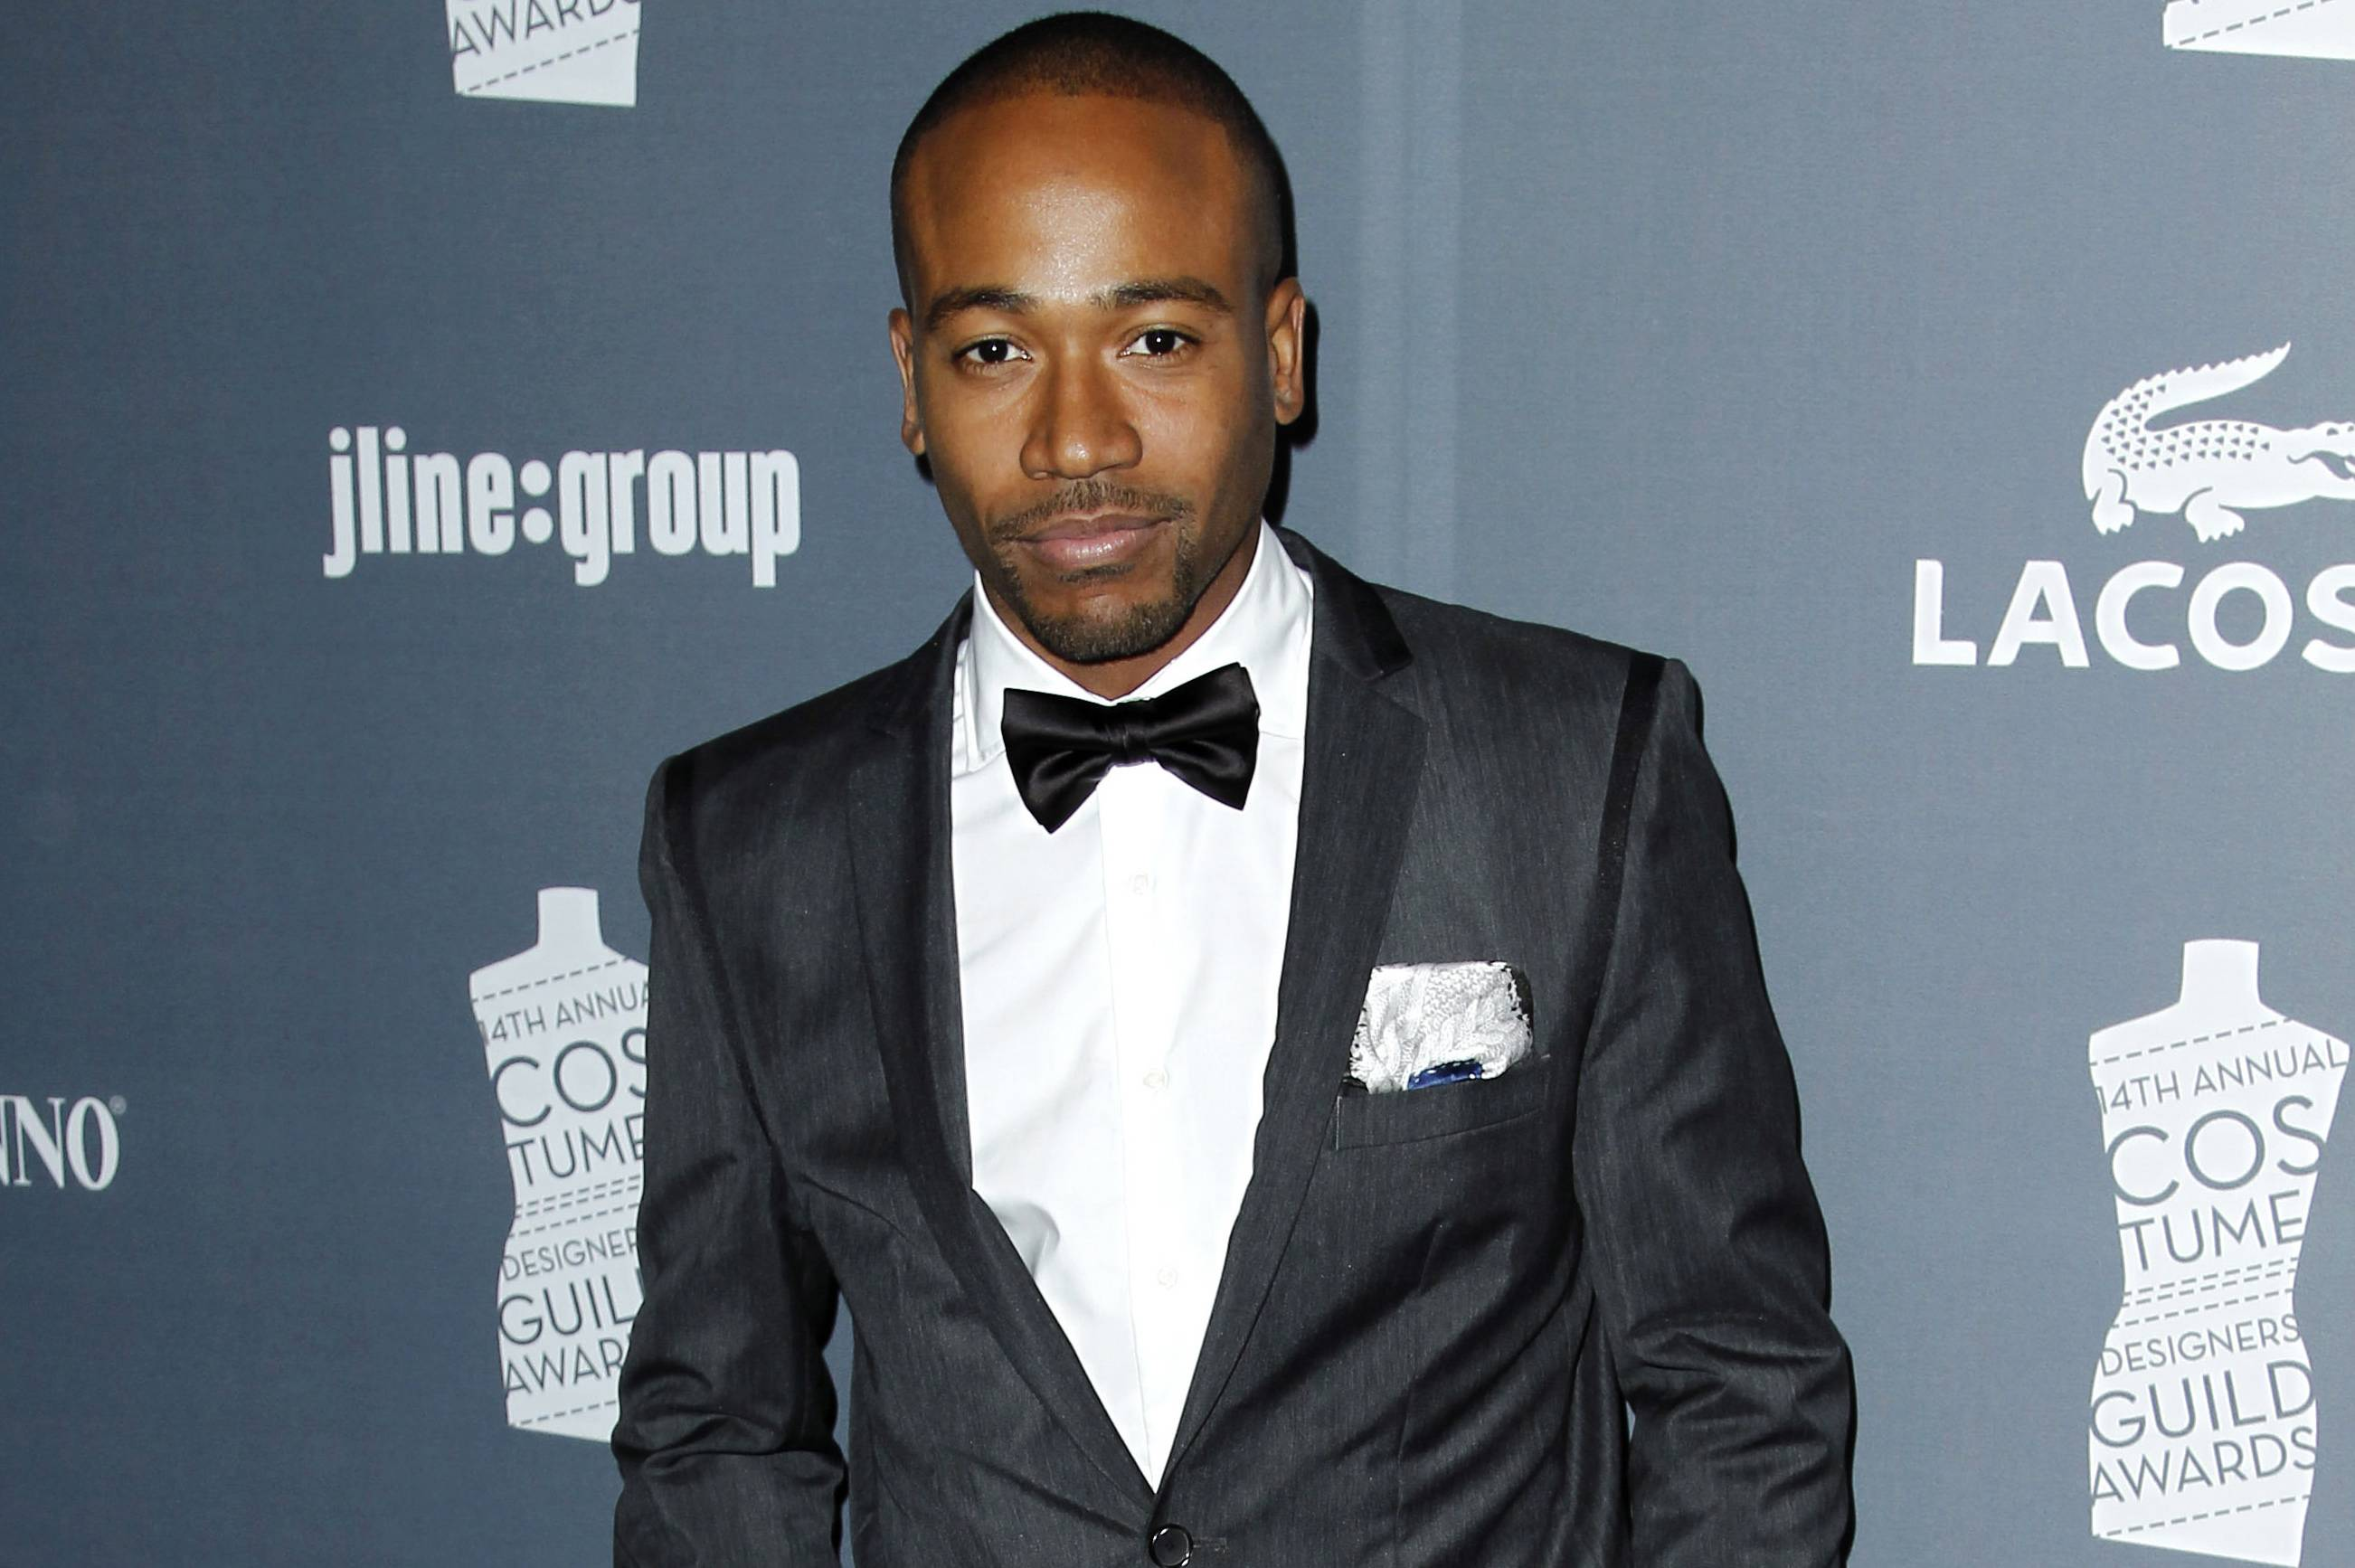 Actor Columbus Short was arrested Wednesday on a felony battery case filed after he allegedly injured a man in a West Hollywood restaurant during an altercation on March 15.